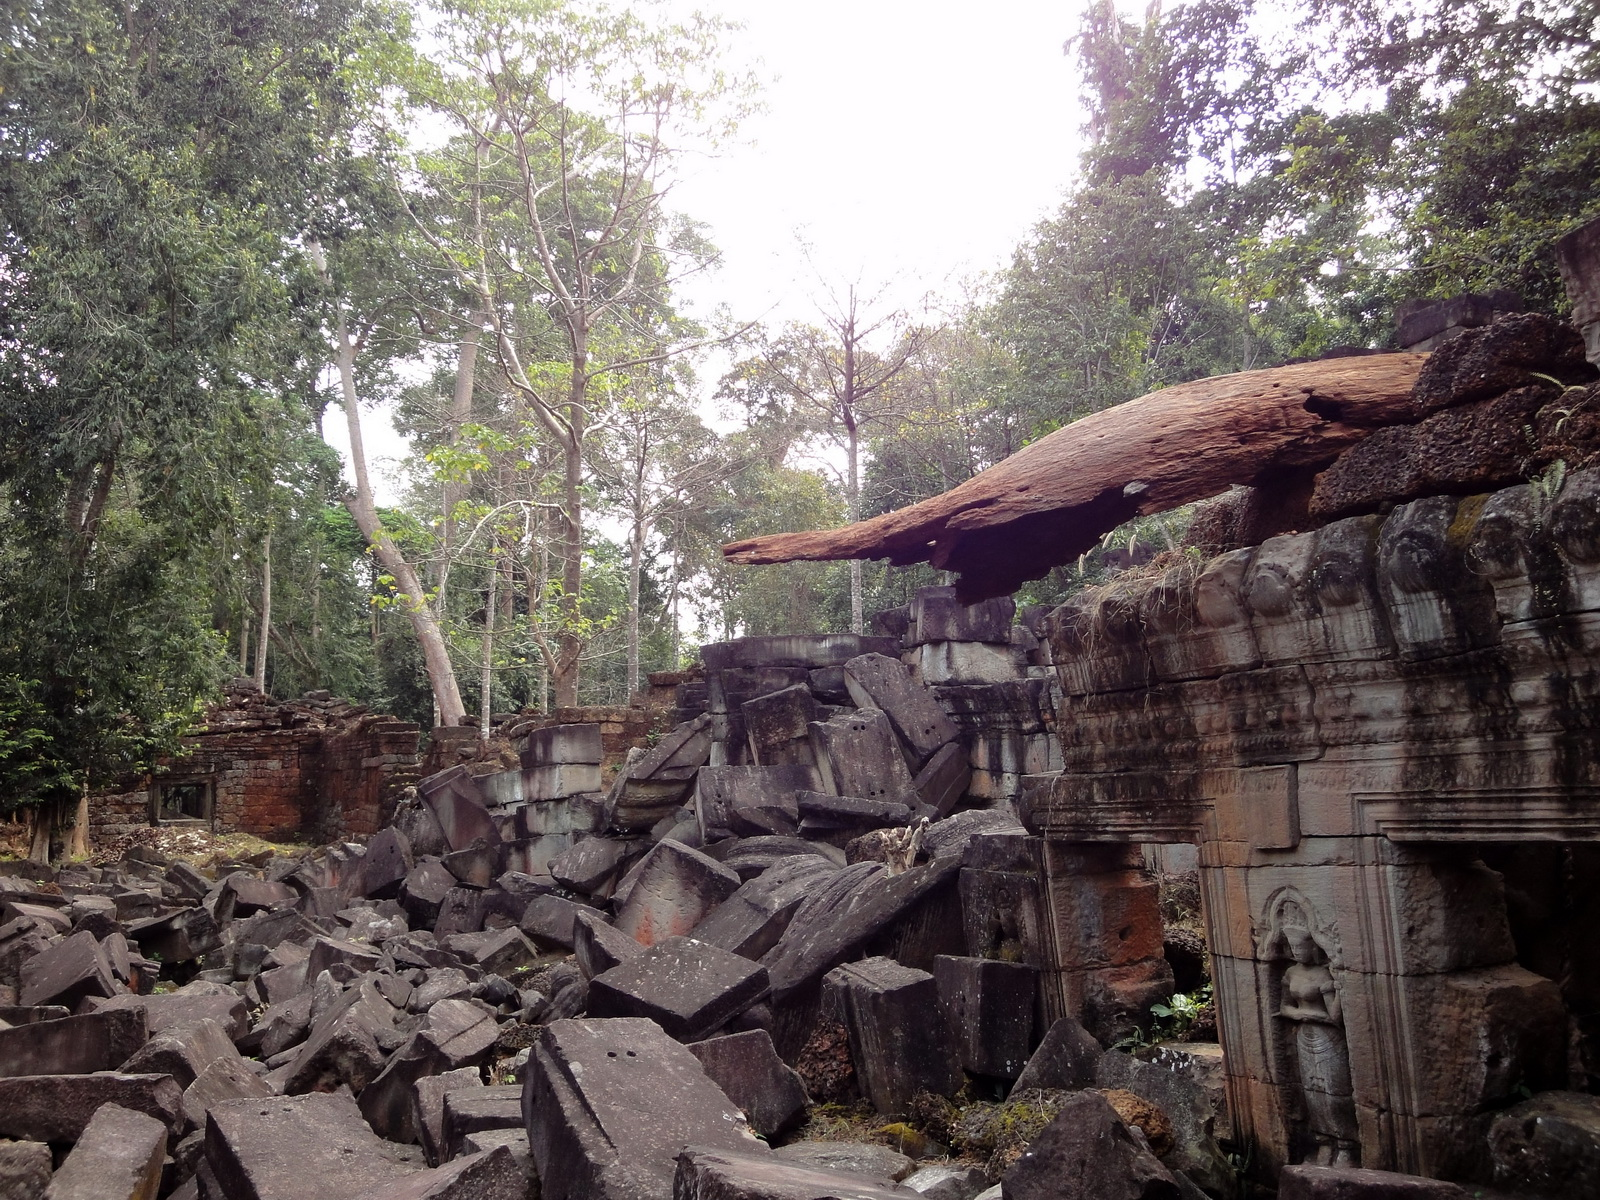 Preah Khan Temple laterite walls overtaken by giant strangler fig trees 10